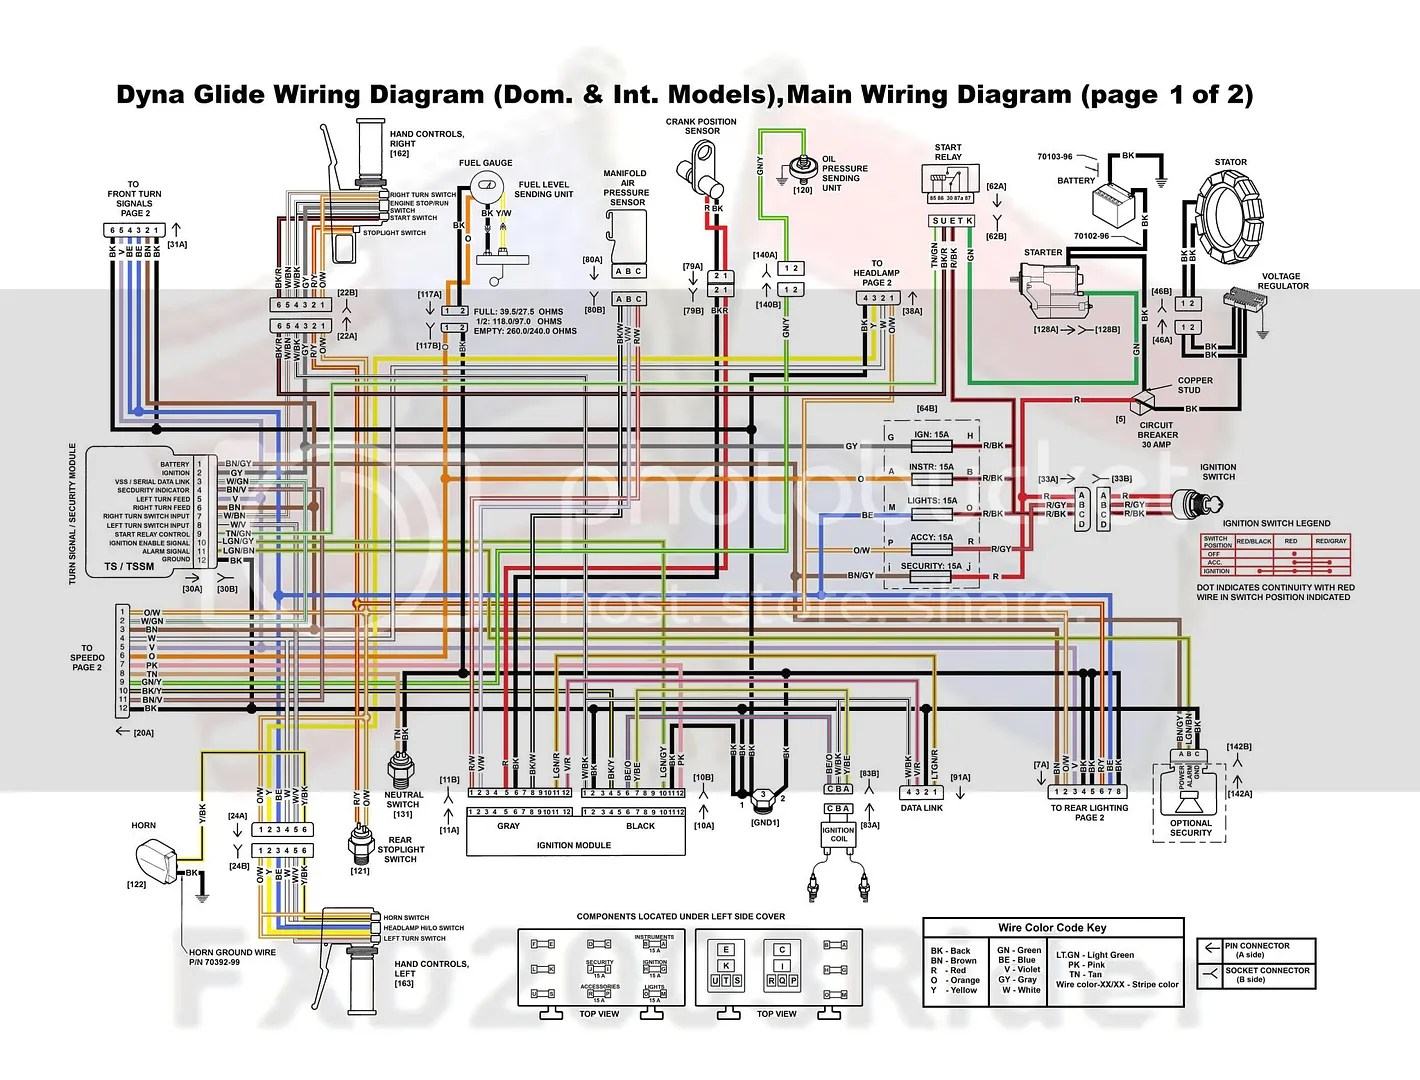 99 softail standard wiring diagram wiring diagrams online 91 harley softail ignition wiring diagram [ 1420 x 1080 Pixel ]